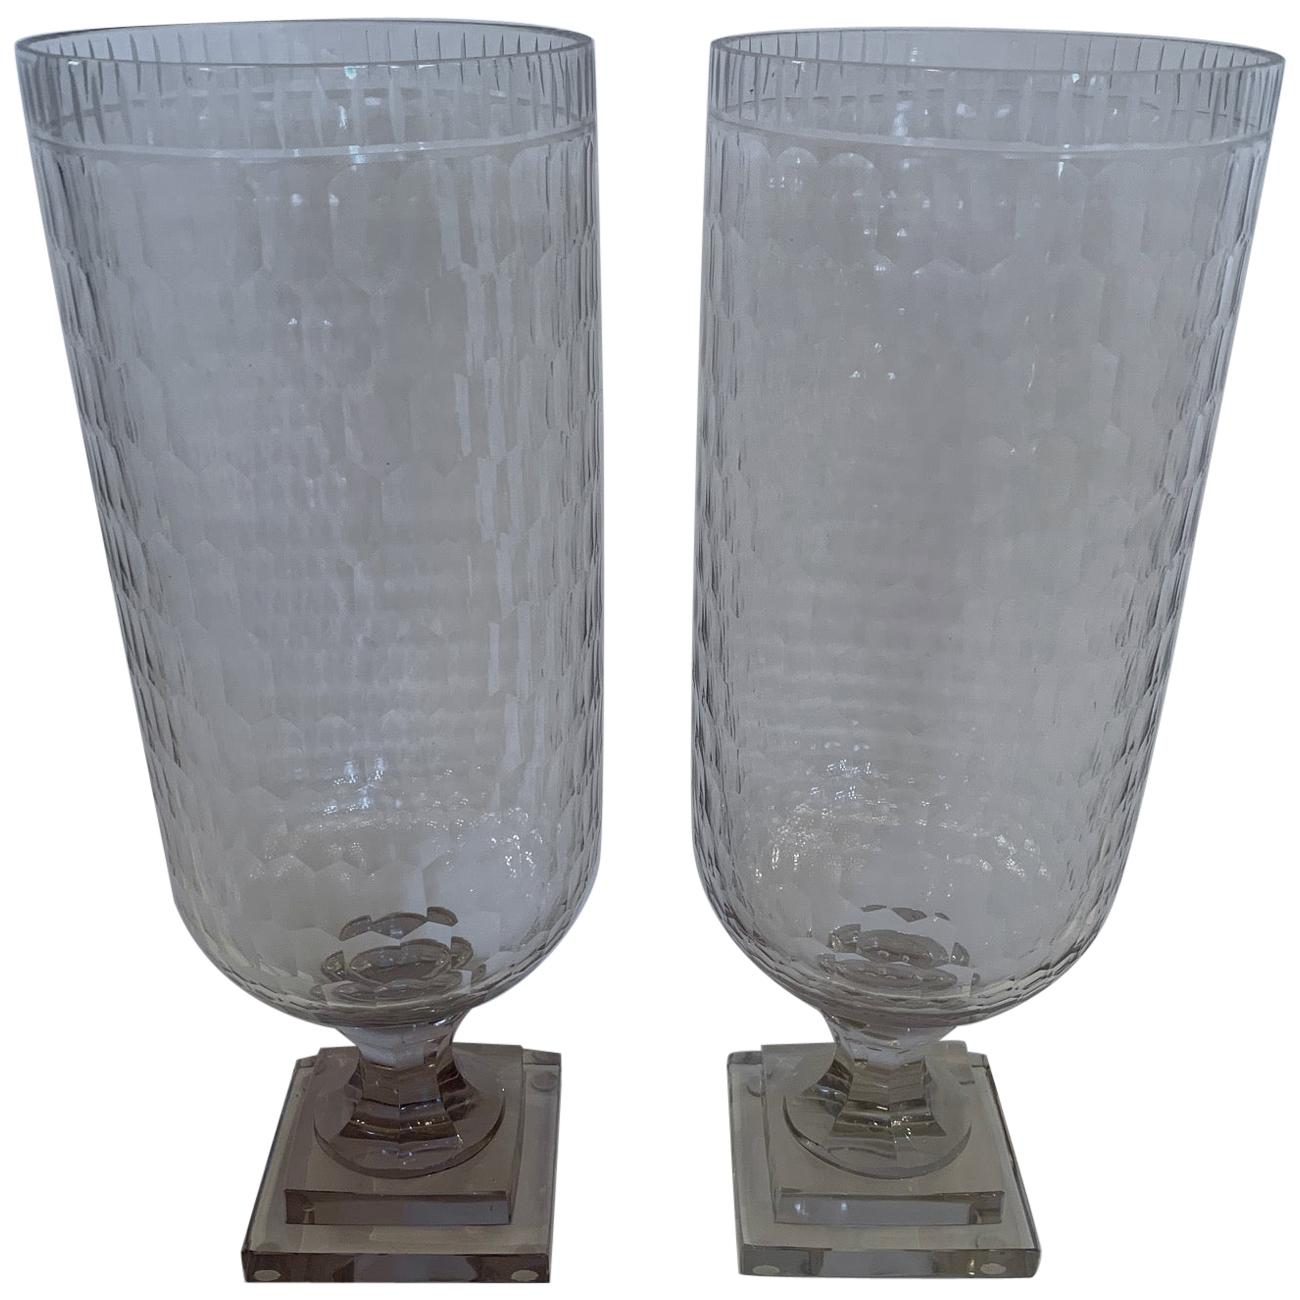 Glistening Pair of Cylindrical Cut Glass Hurricanes Candle Holders